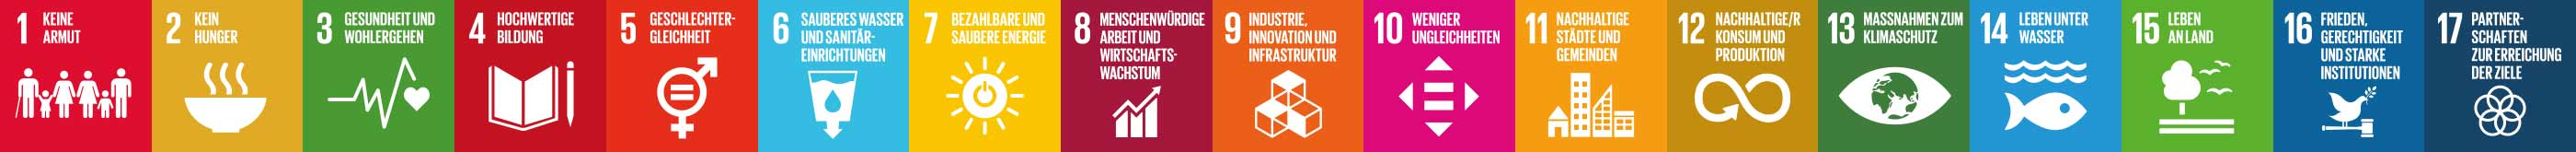 All 17 icons of the UN Sustainable Development Goals with a number, graphic and German text   mey®